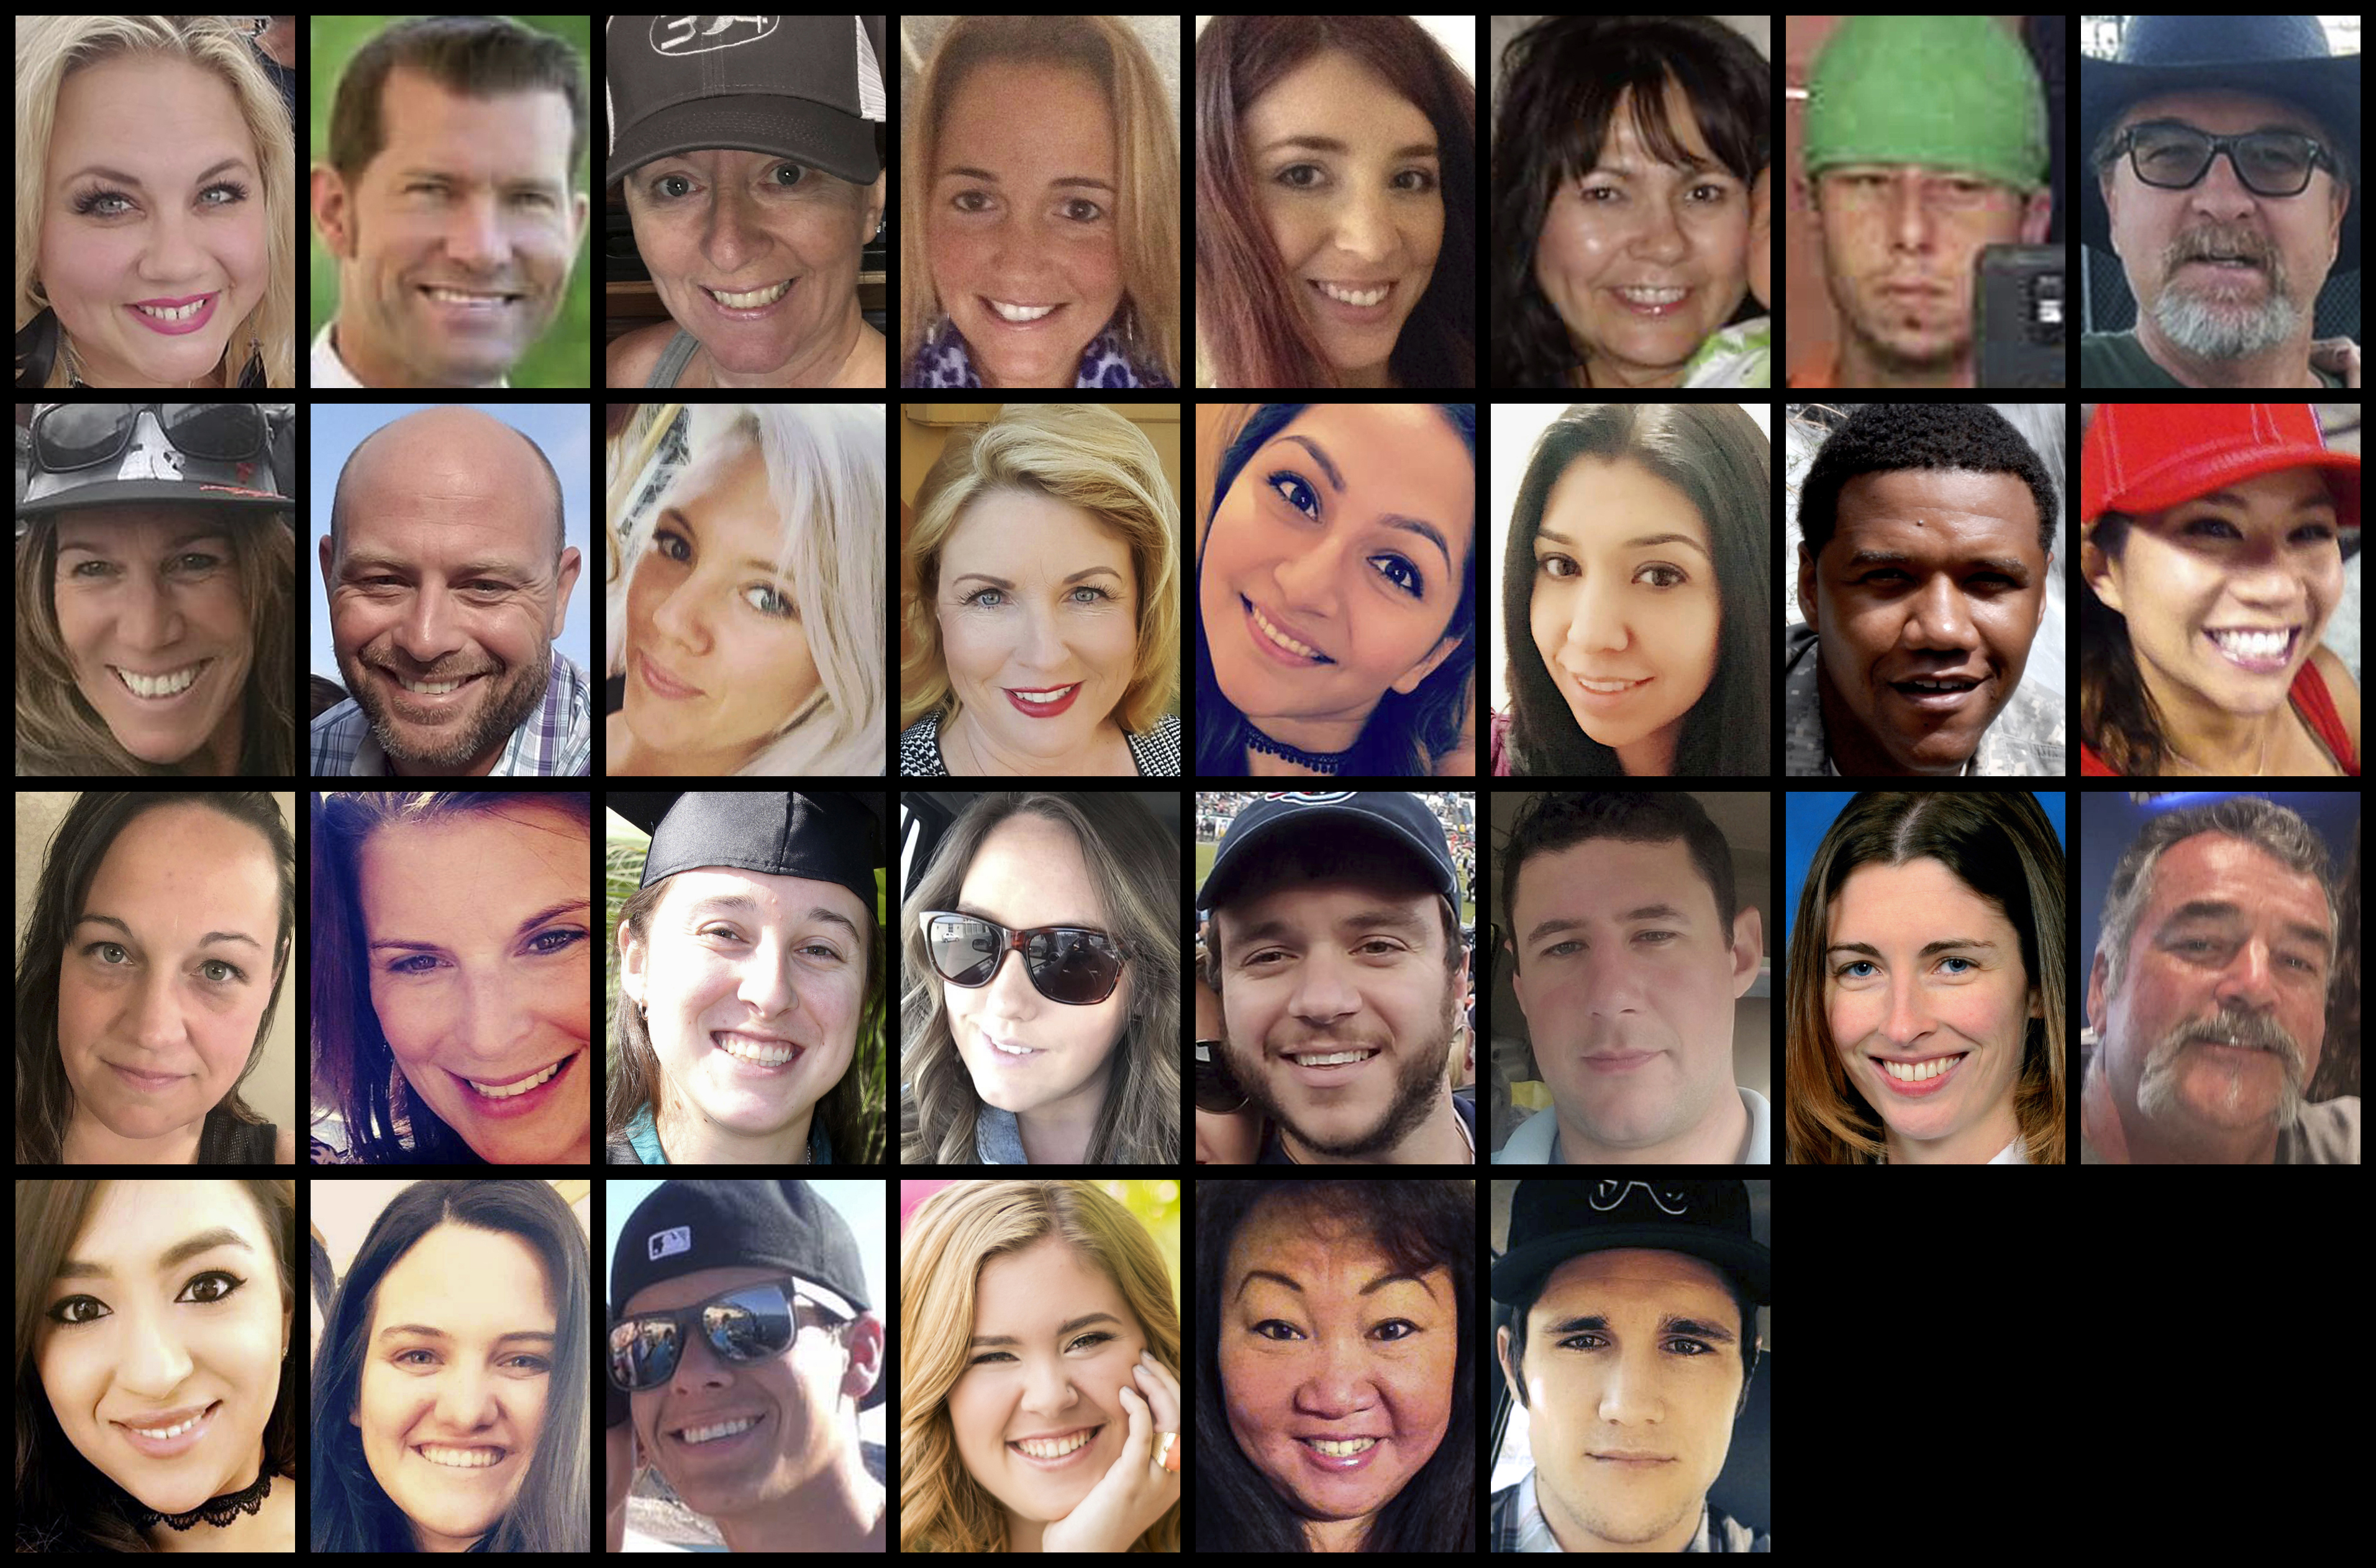 This photo combination shows some of the victims of the mass shooting that occurred at a country music festival in Las Vegas on Sunday, Oct. 1, 2017. Top row from left are: Heather Warino Alvarado, Steven Berger, Denise Burditus, Sandy Casey, Andrea Castilla, Denise Cohen, Austin Davis and Tom Day Jr. Second row from left are: Stacee Etcheber, Brian Fraser, Keri Lynn Galvan, Dana Gardner, Angie Gomez, Rocio Guillen, Charleston Hartfield and Nicol Kimura. Third row from left are: Jessica Klymchuk, Rhonda LeRocque, Kelsey Meadows, Calla Medig, Sonny Melton, Adrian Murfitt, Rachael Parker and John Phippen. Bottom row from left are: Melissa Ramirez, Jordyn Rivera, Quinton Robbins, Bailey Schweitzer, Laura Shipp and Brennan Stewart. (AP Photo)